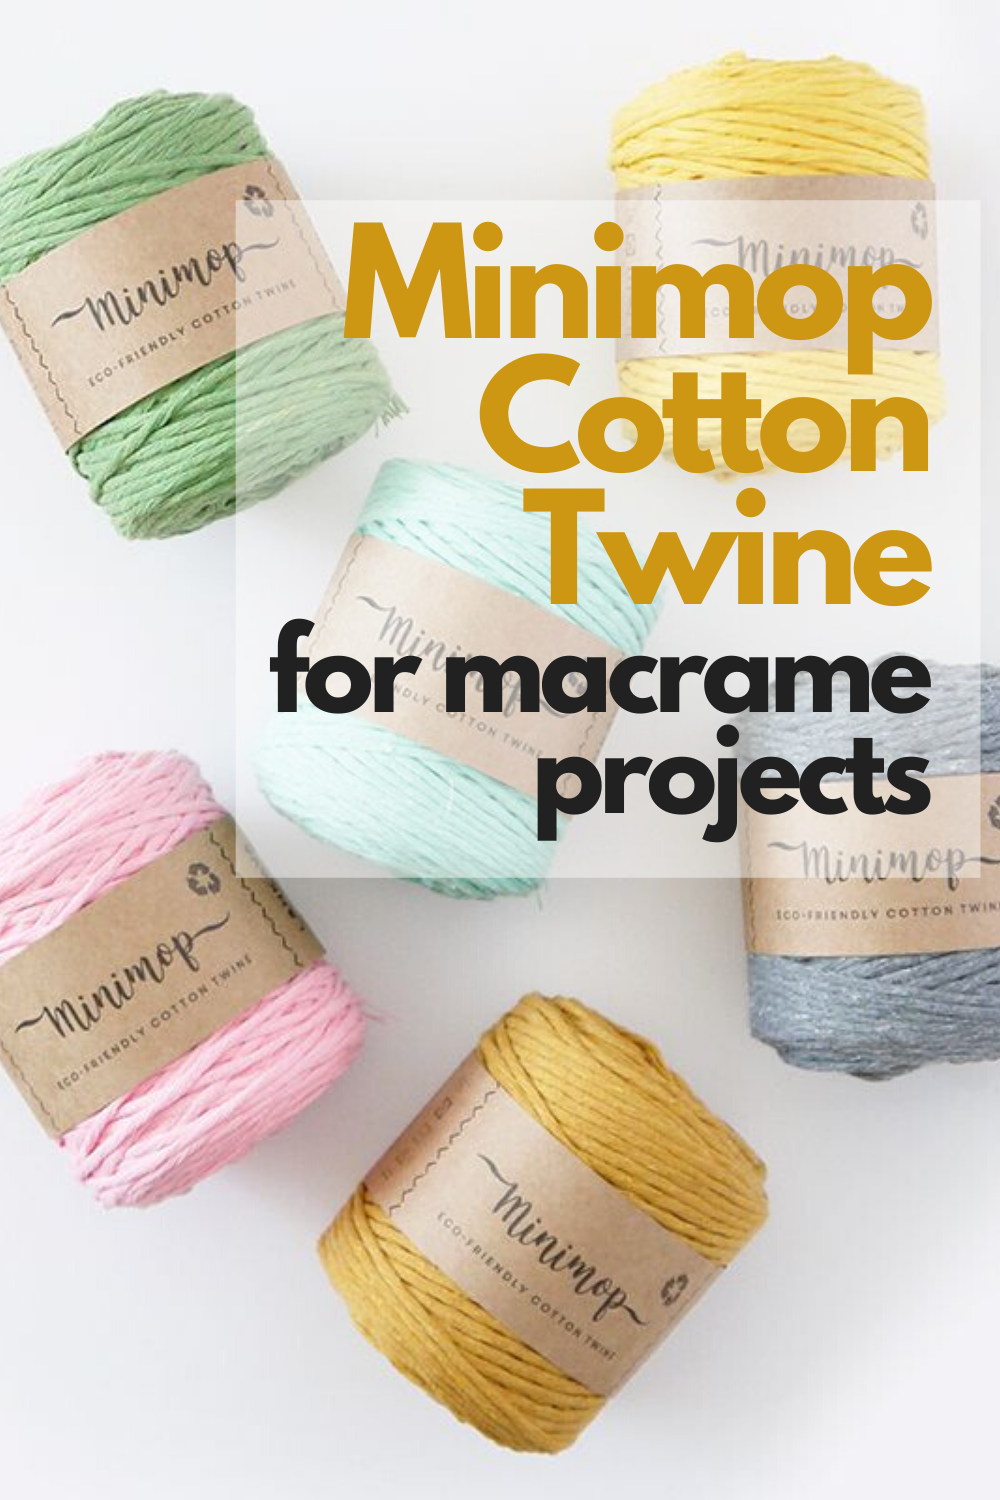 Lankava Minimop Cotton Twine 150g for DIY macrame projects from our online yarn shop TitiTyy: www.titityy.fi #cottontwine #macrame #yarn #titityy